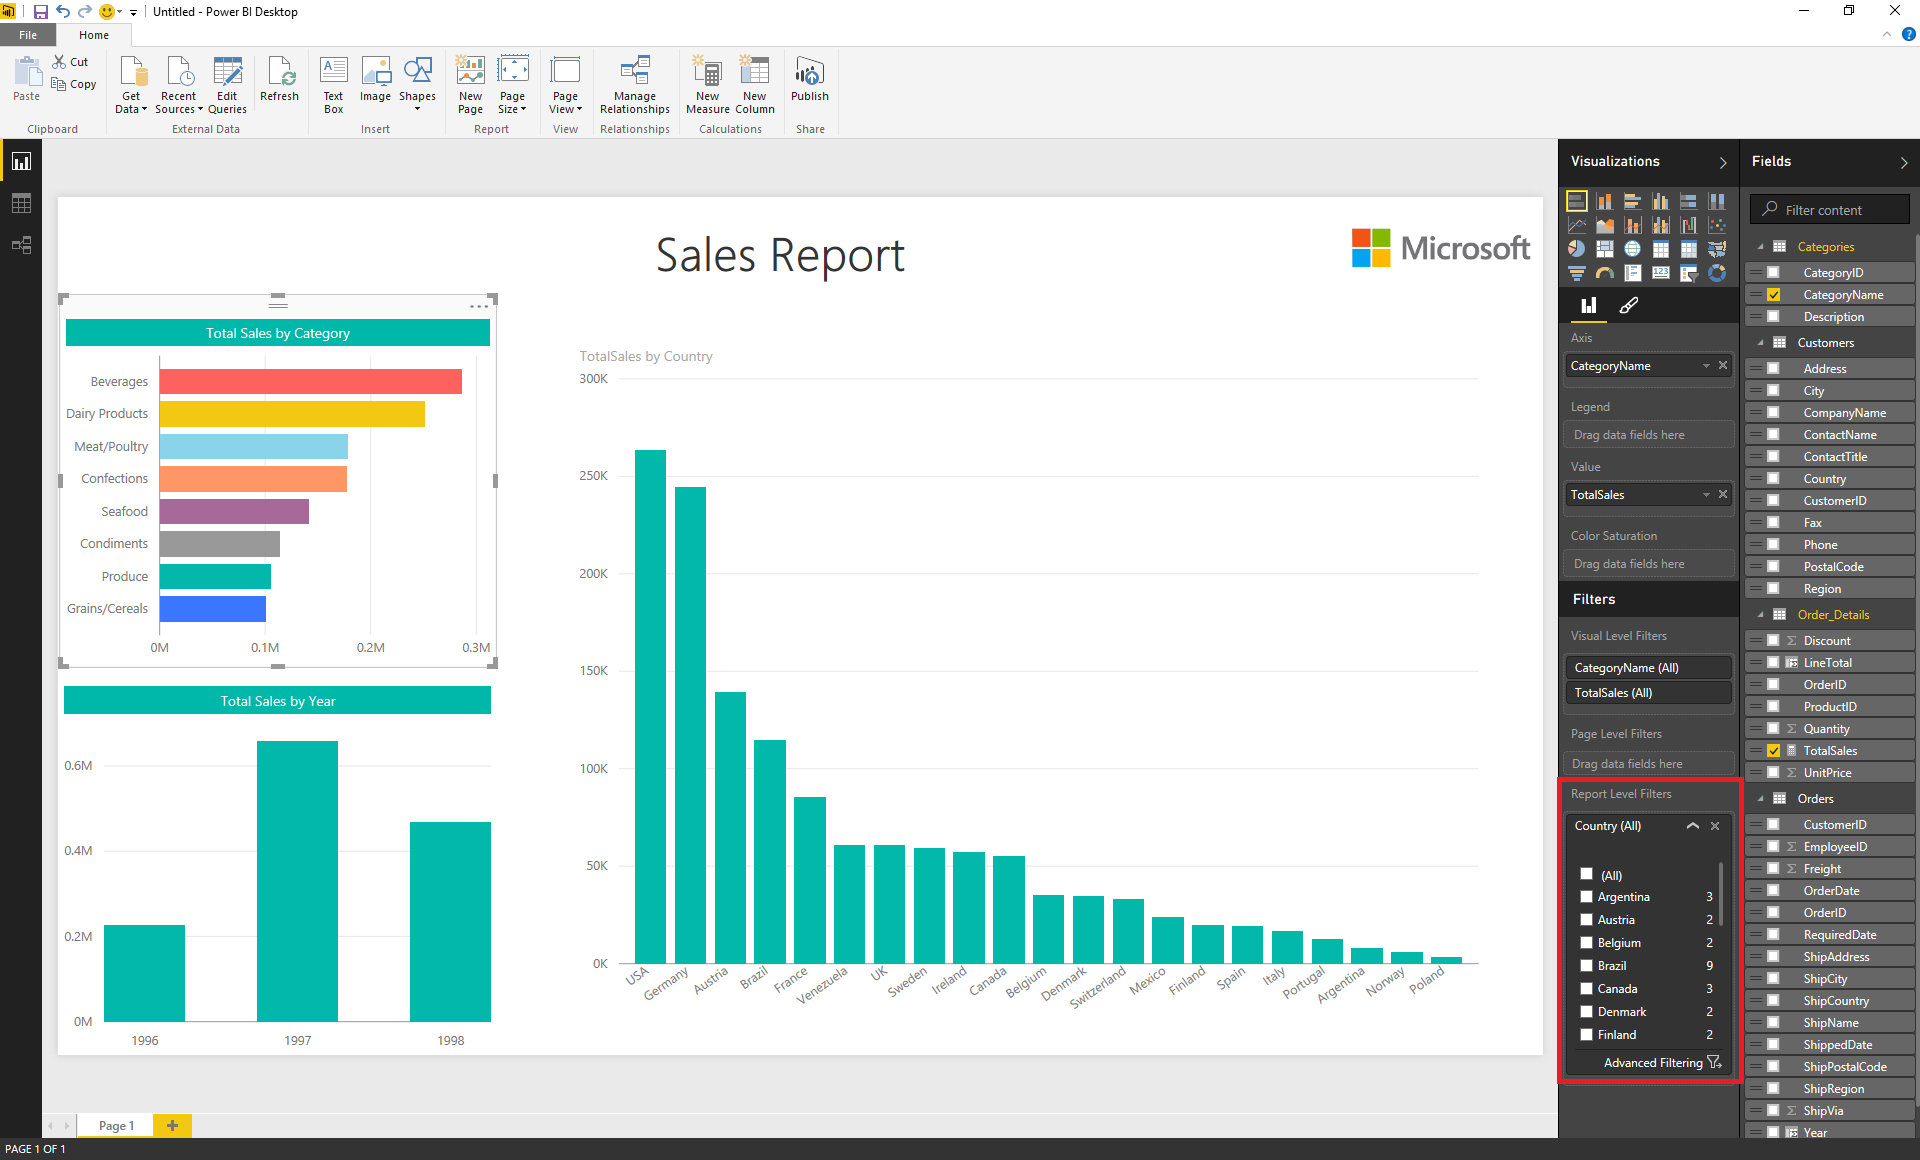 44 New Features In The Power Bi Desktop September Update Microsoft Atx Supply Restructuring Full Outage With Off Circuit Report Authoring